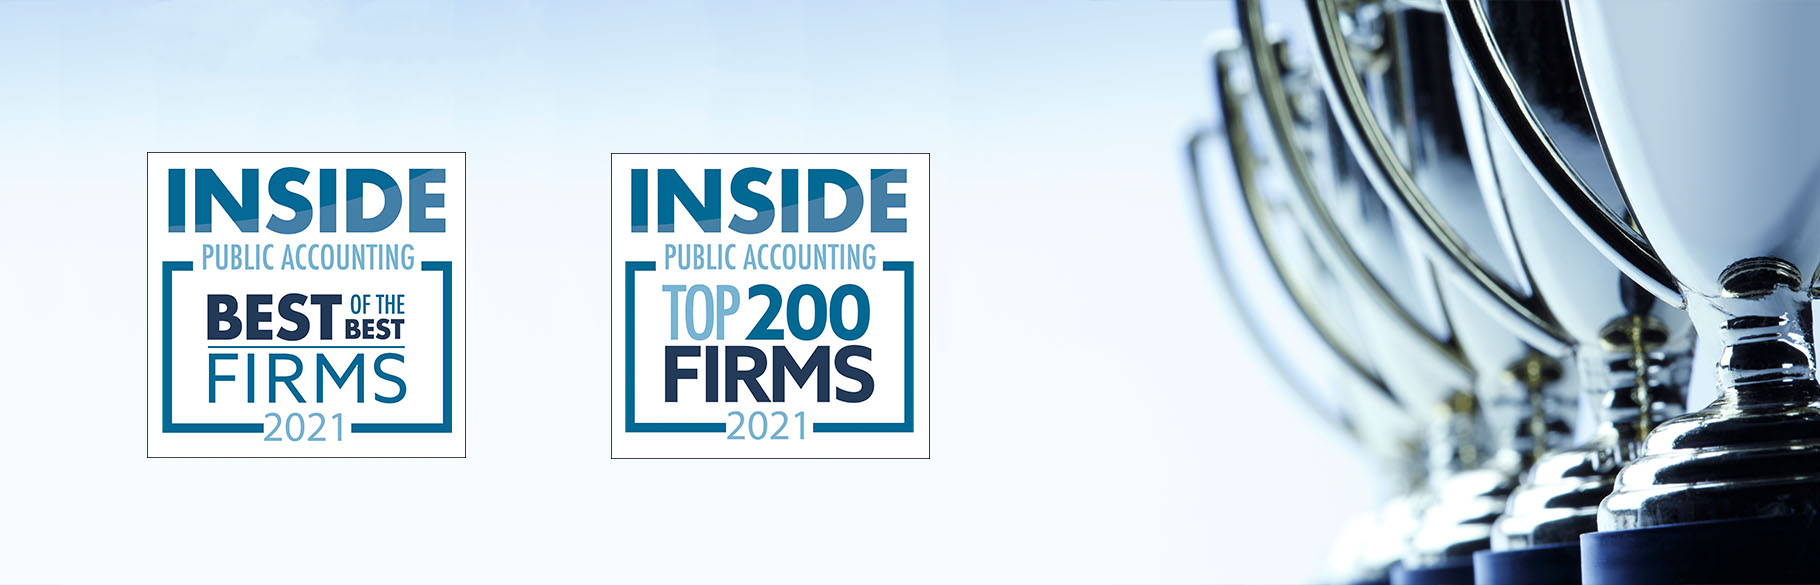 INSIDE Public Accounting Names Porte Brown as a national Best of the Best Firm